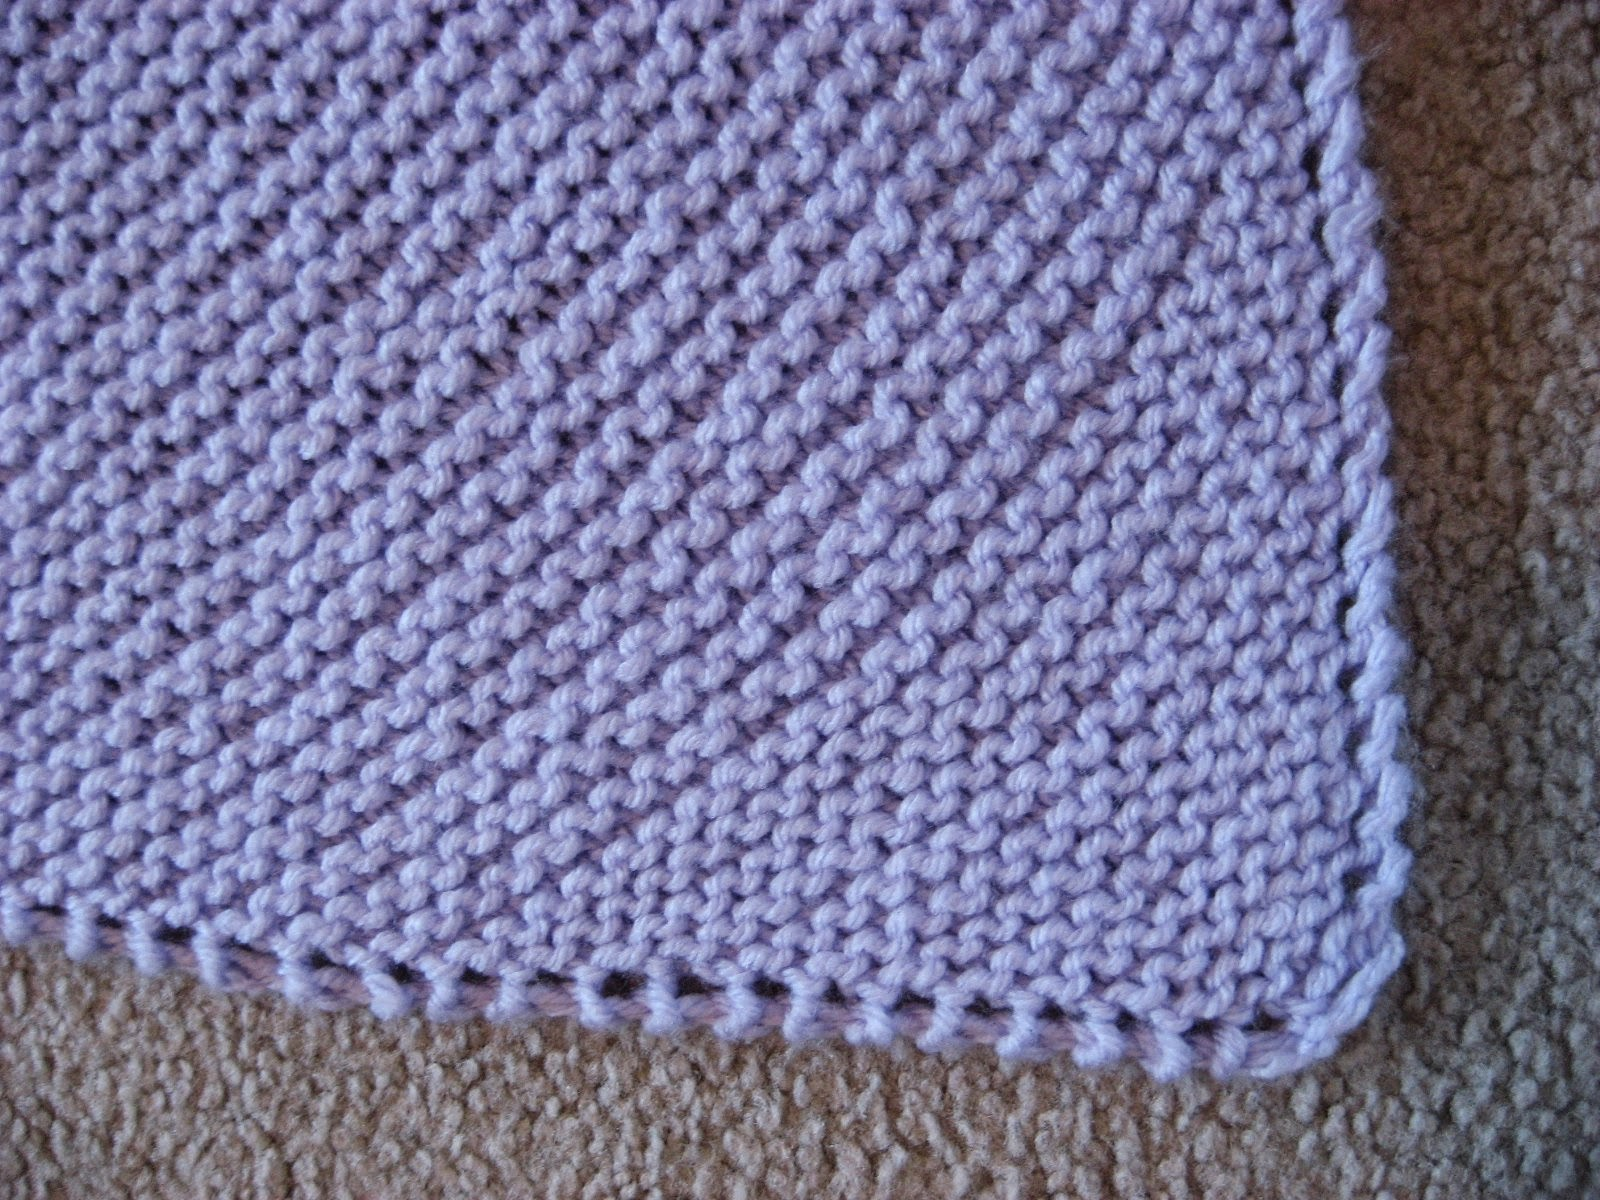 Hooked On Needles Easy Knitted Baby Blanket Instructions Included